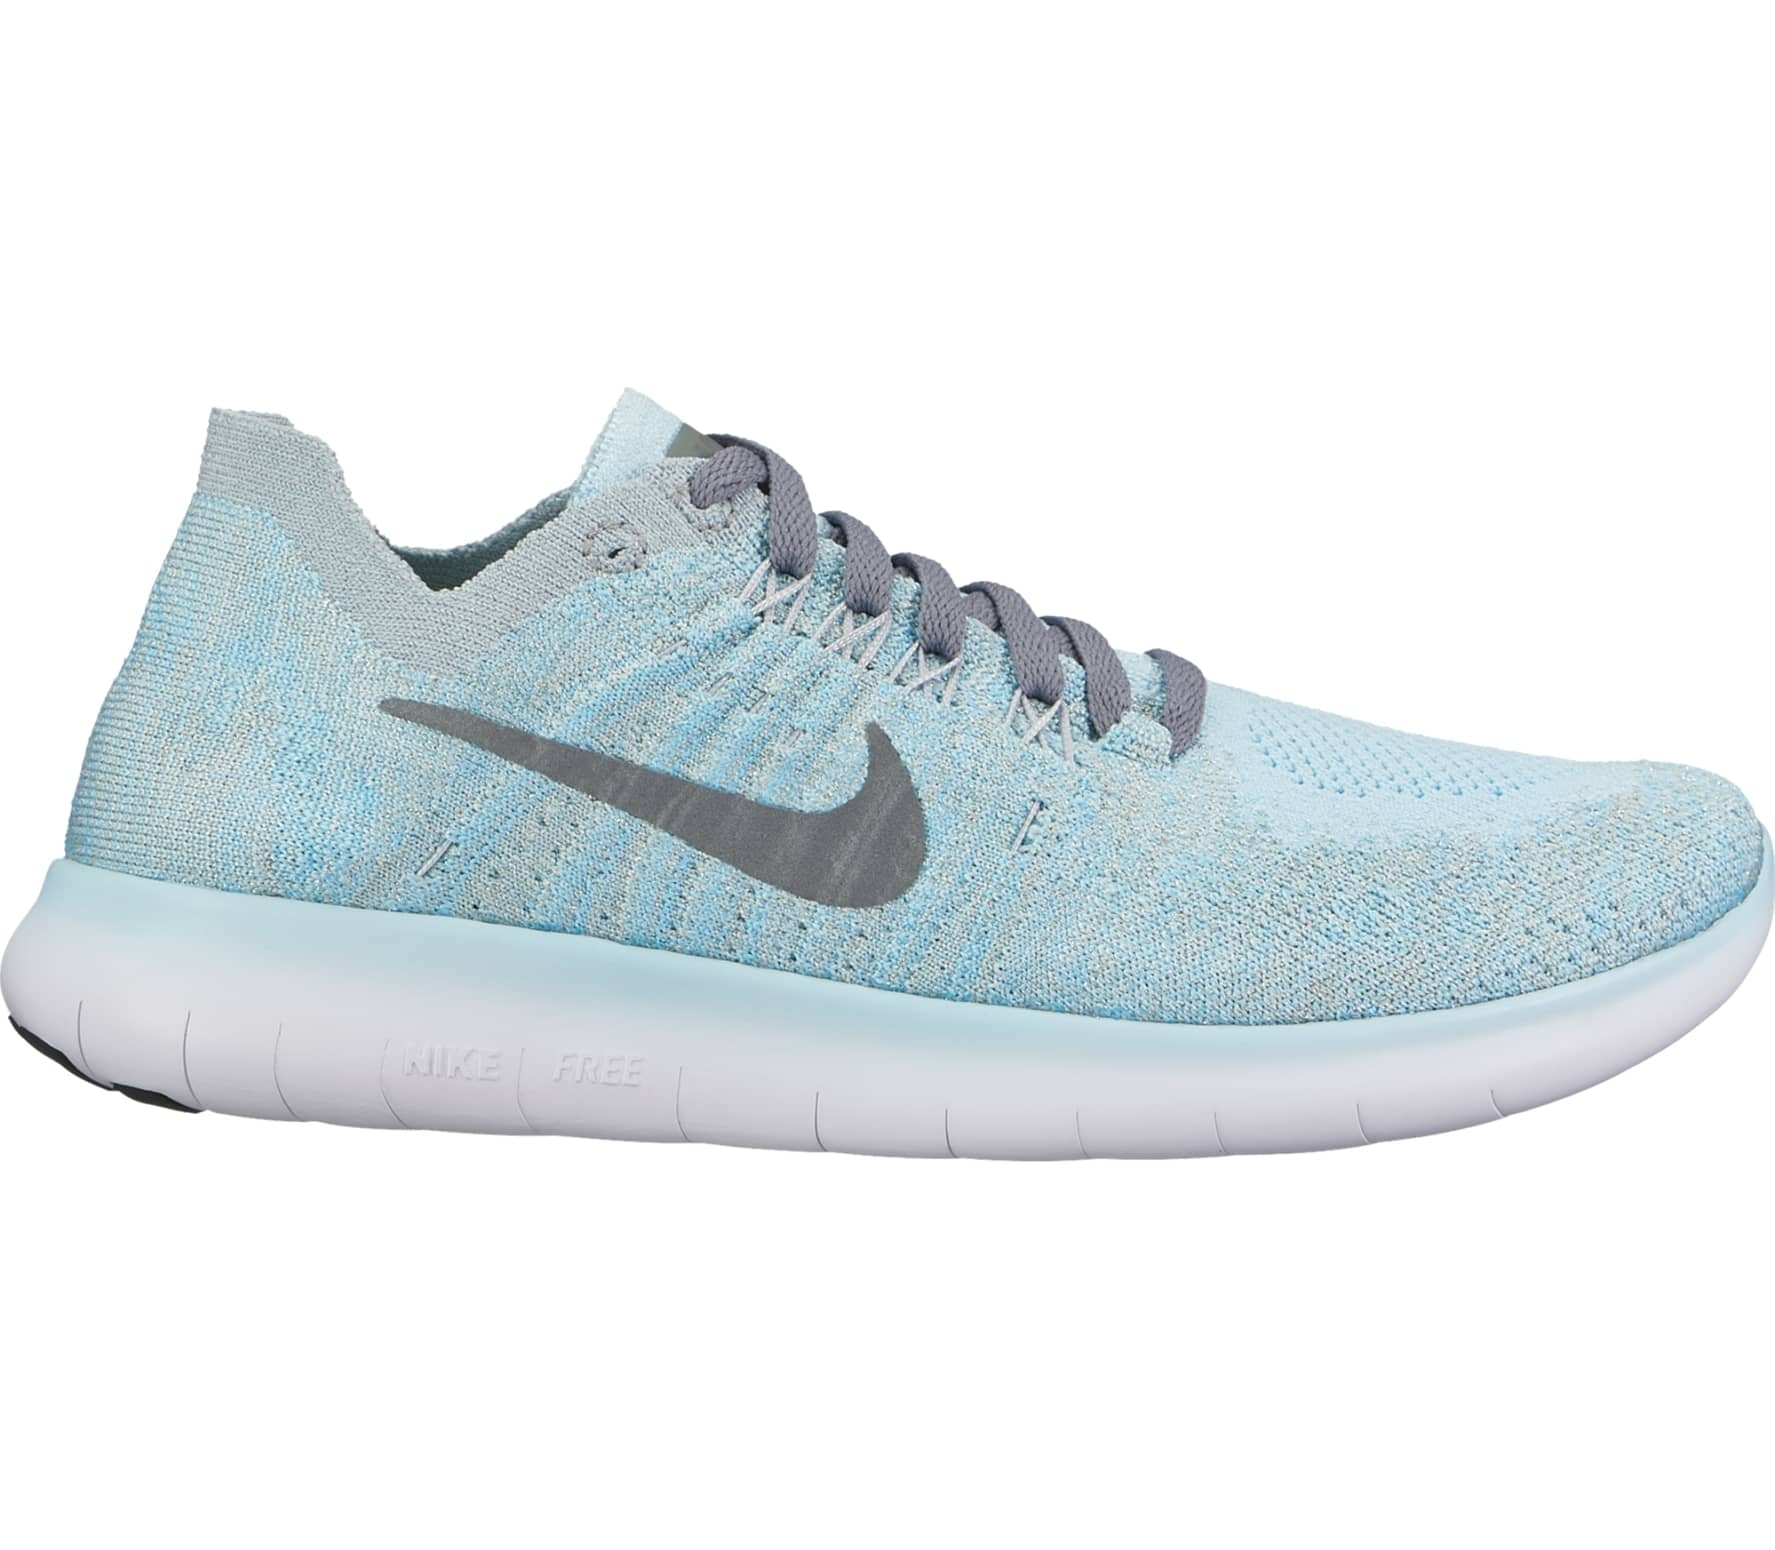 44dc524eed6 Nike - Free RN Flyknit 2 (GS) Children running shoes (blue grey ...